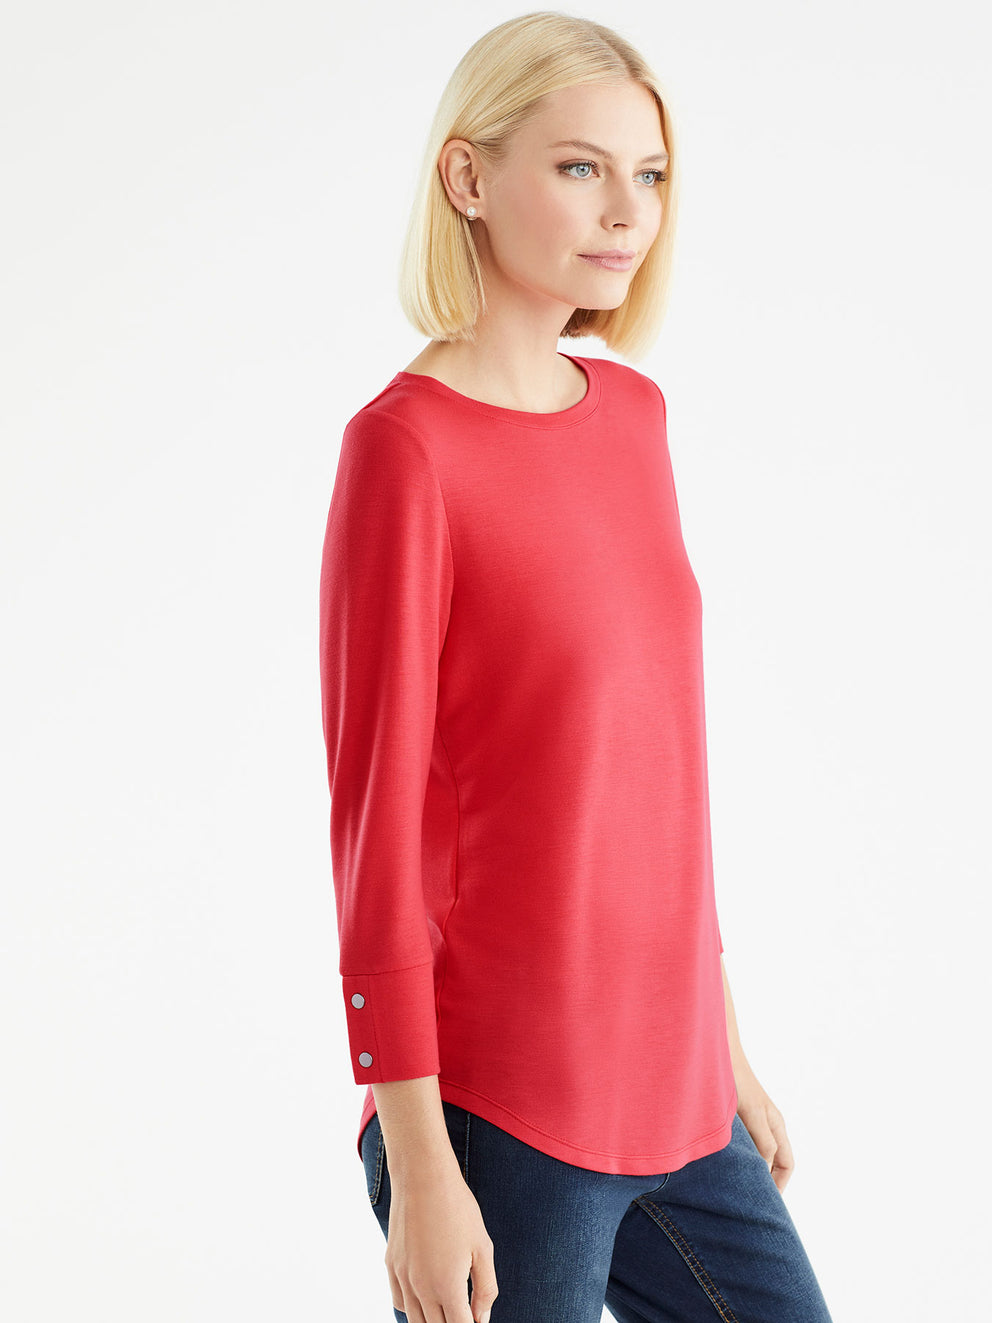 The Jones New York French Terry Boatneck Top, Plus Size in color Cherry - Image Position 2